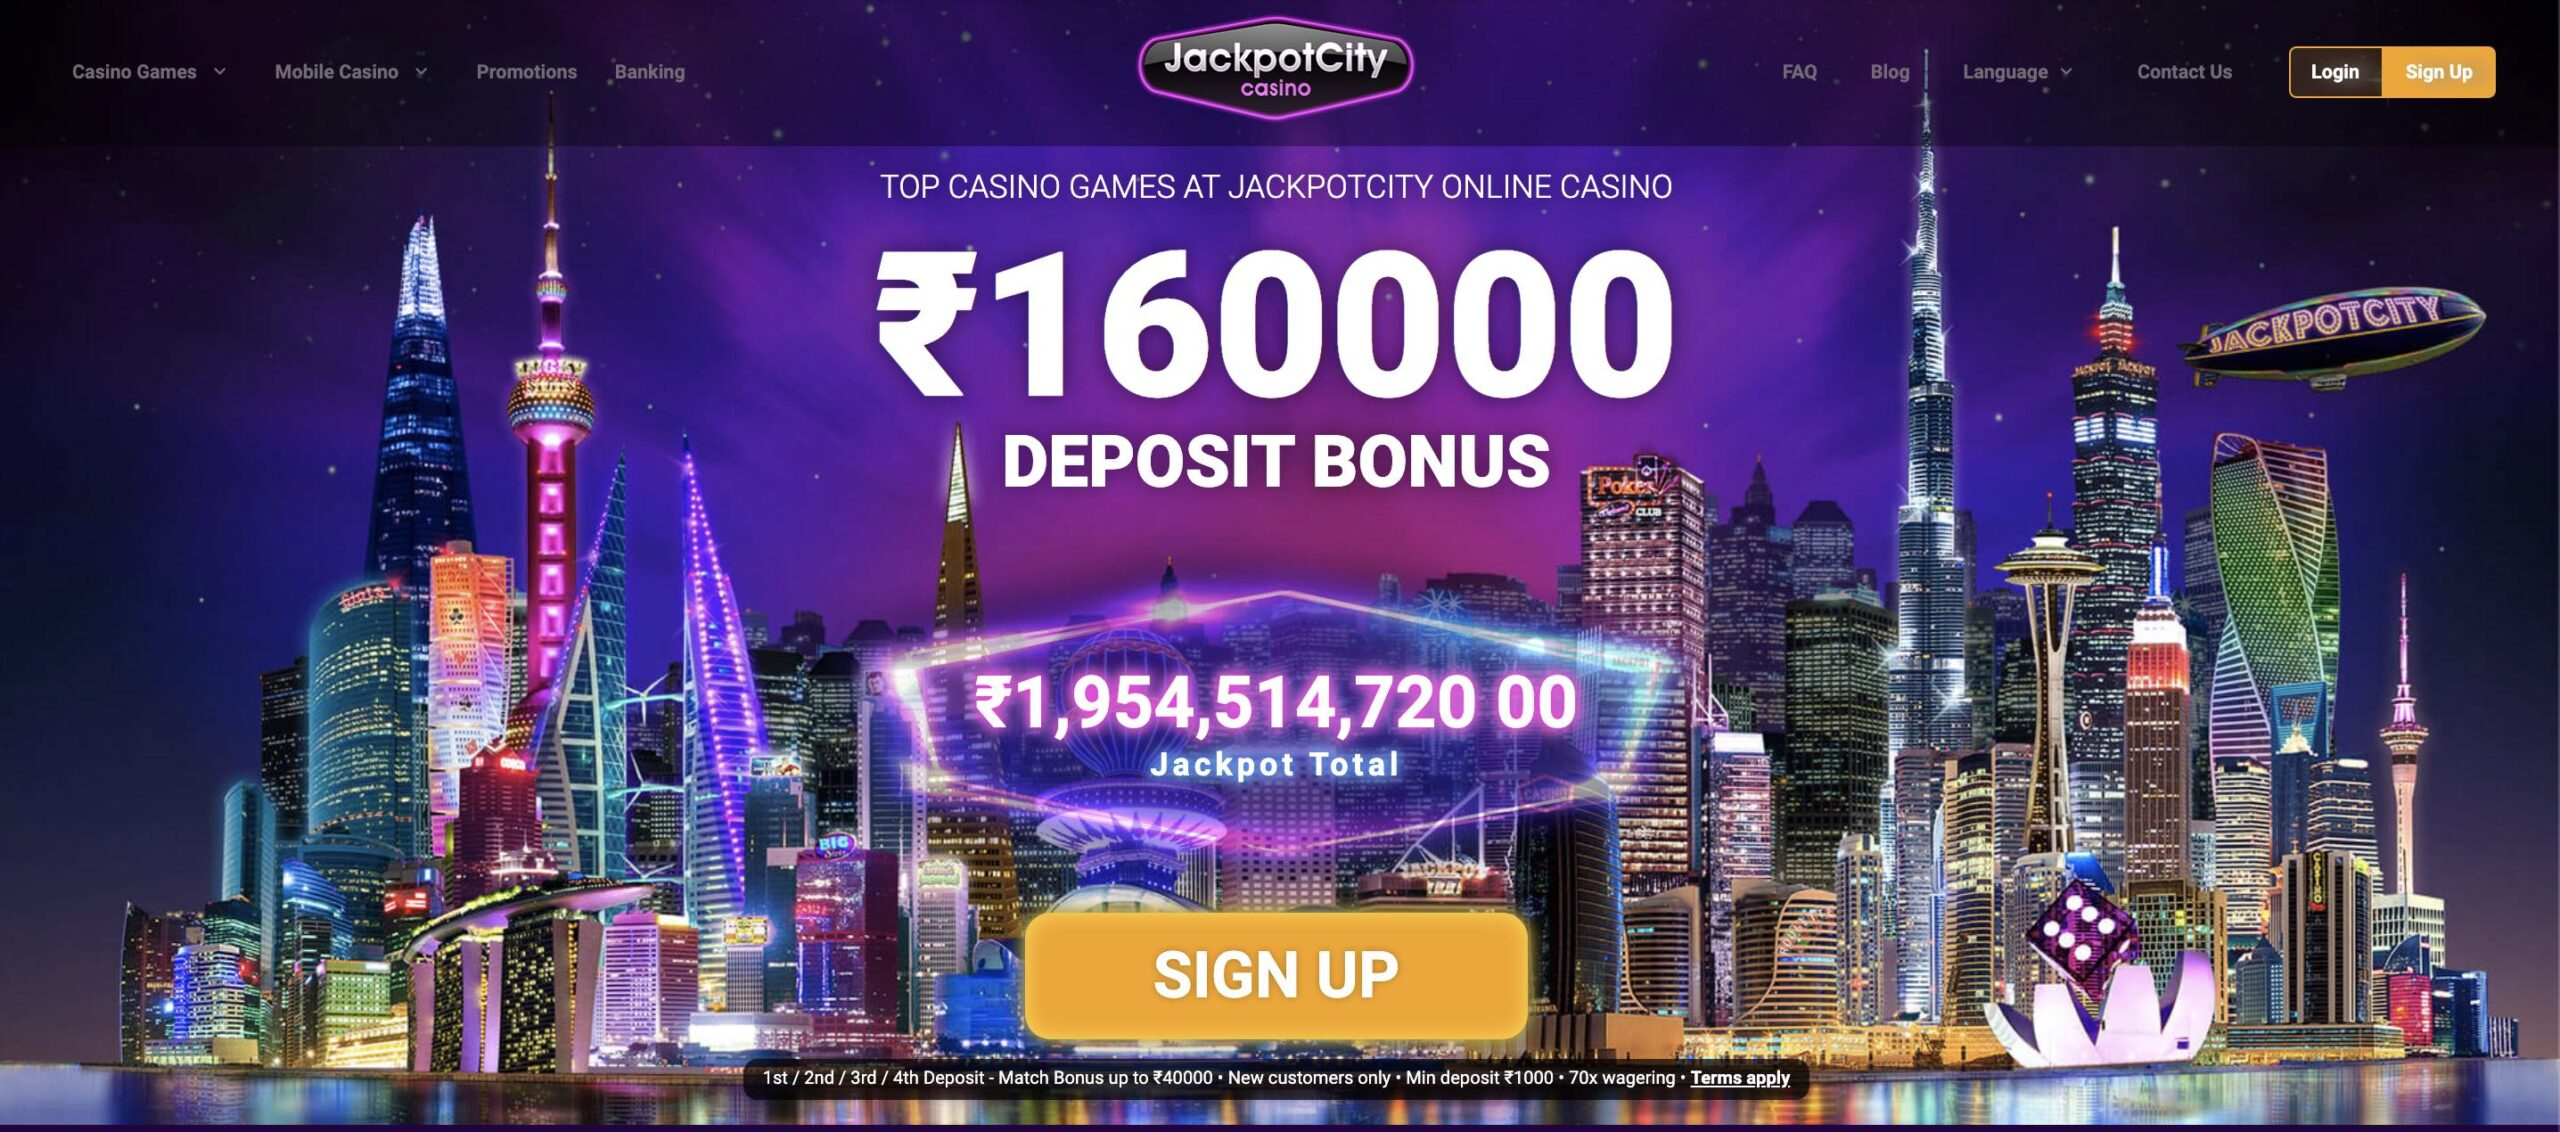 jackpotcity homepage and welcome bonus for the Indian market